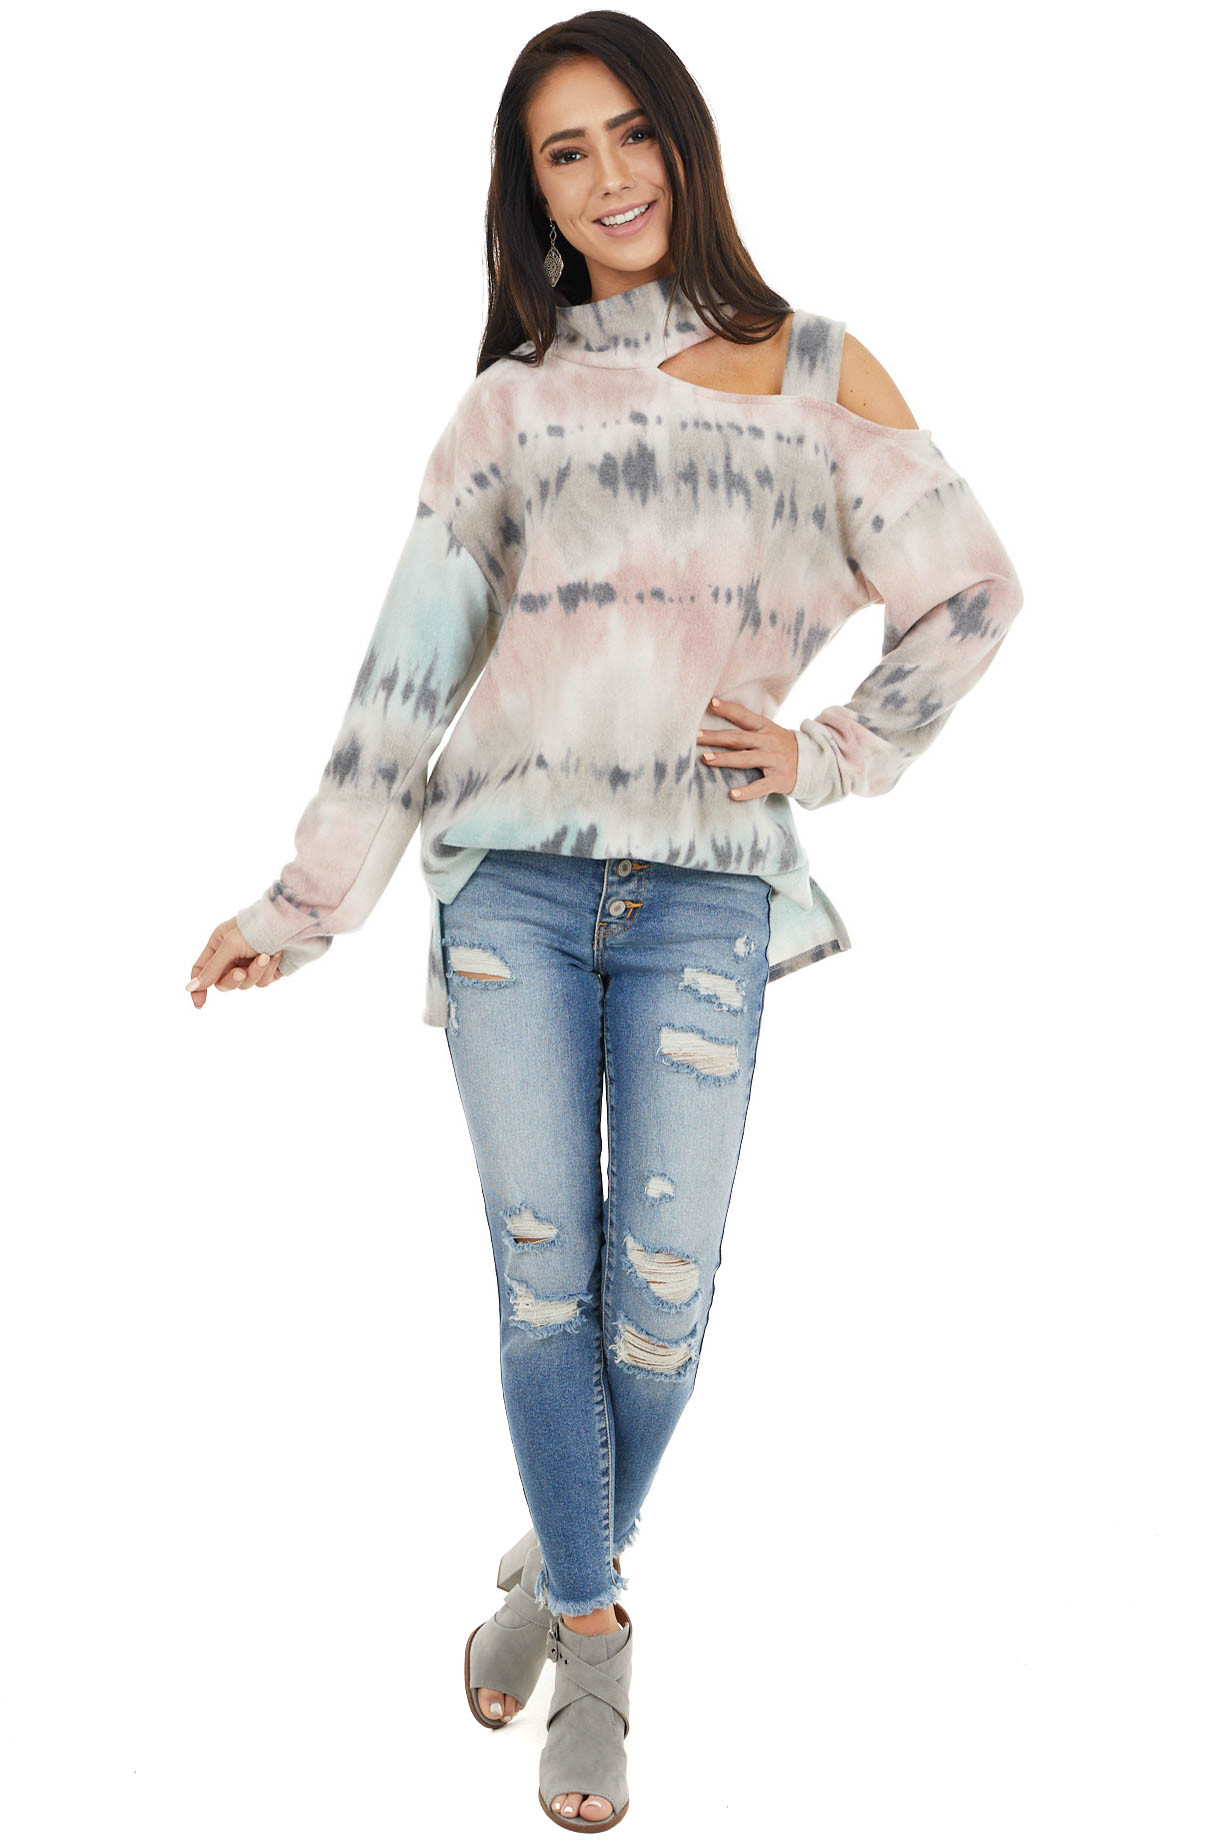 Salmon and Teal Tie Dye Long Sleeve Top with High Neckline